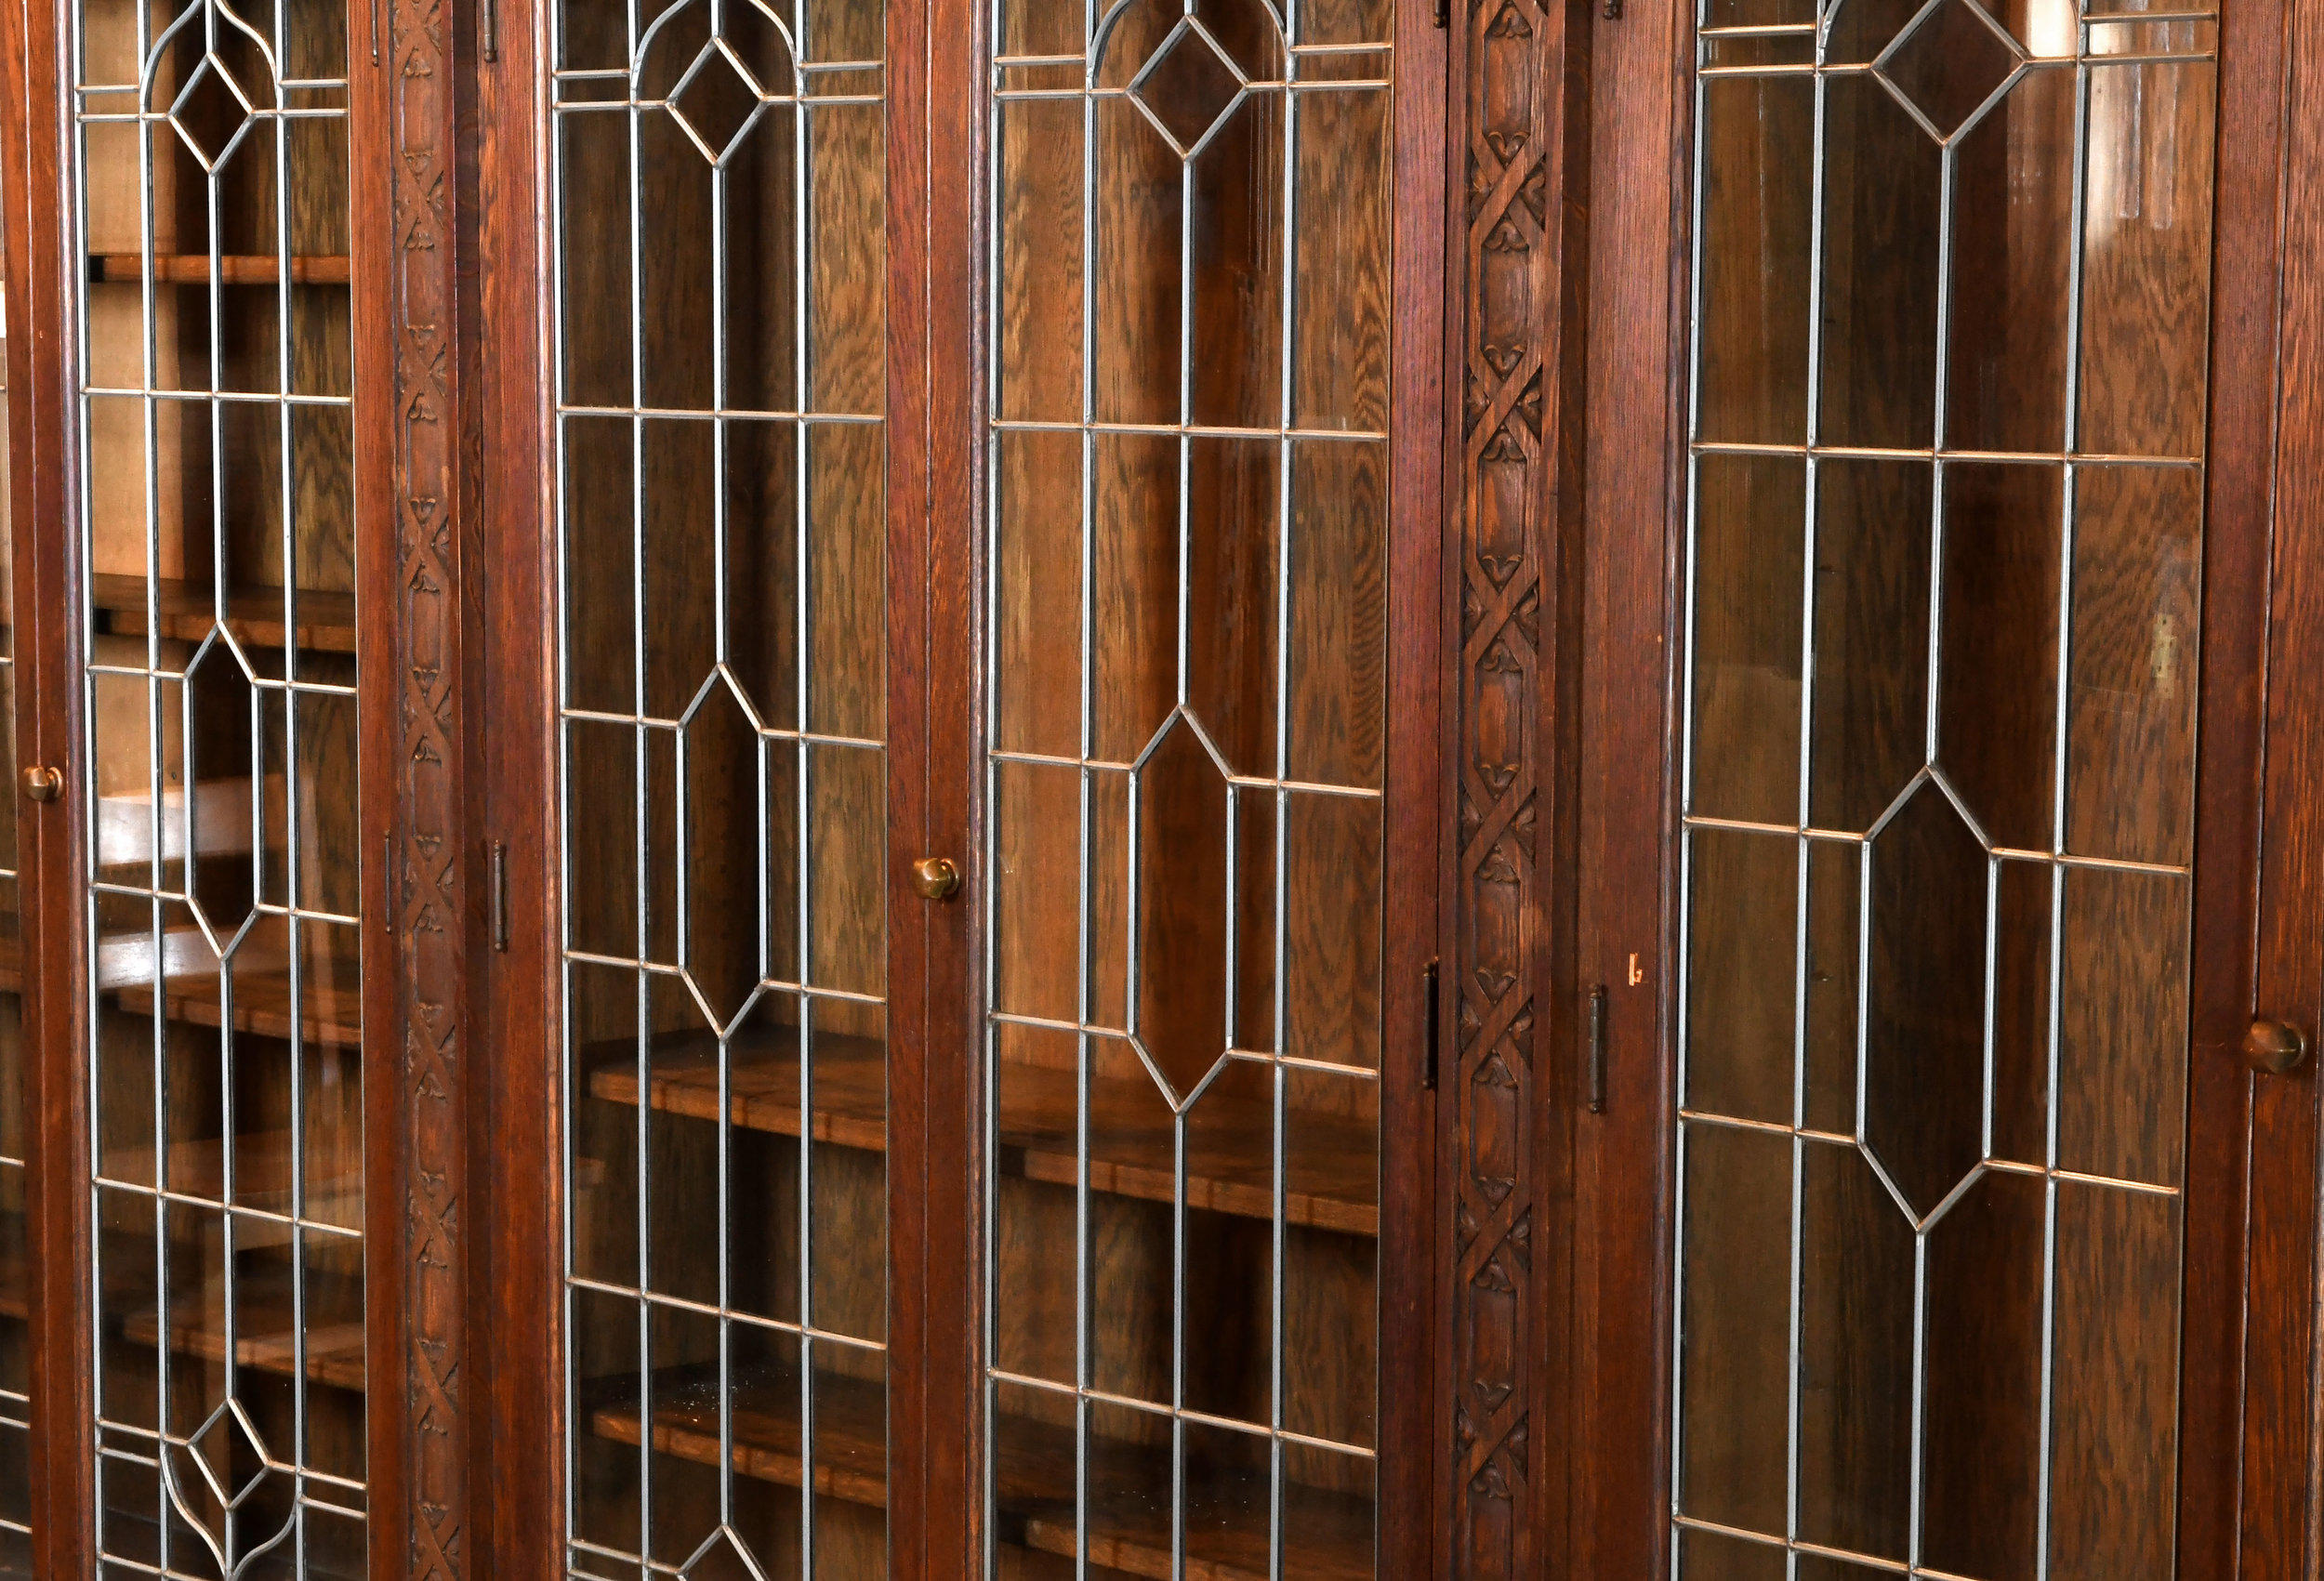 47334-large-bookcase-unit-leaded-glass-detail.jpg